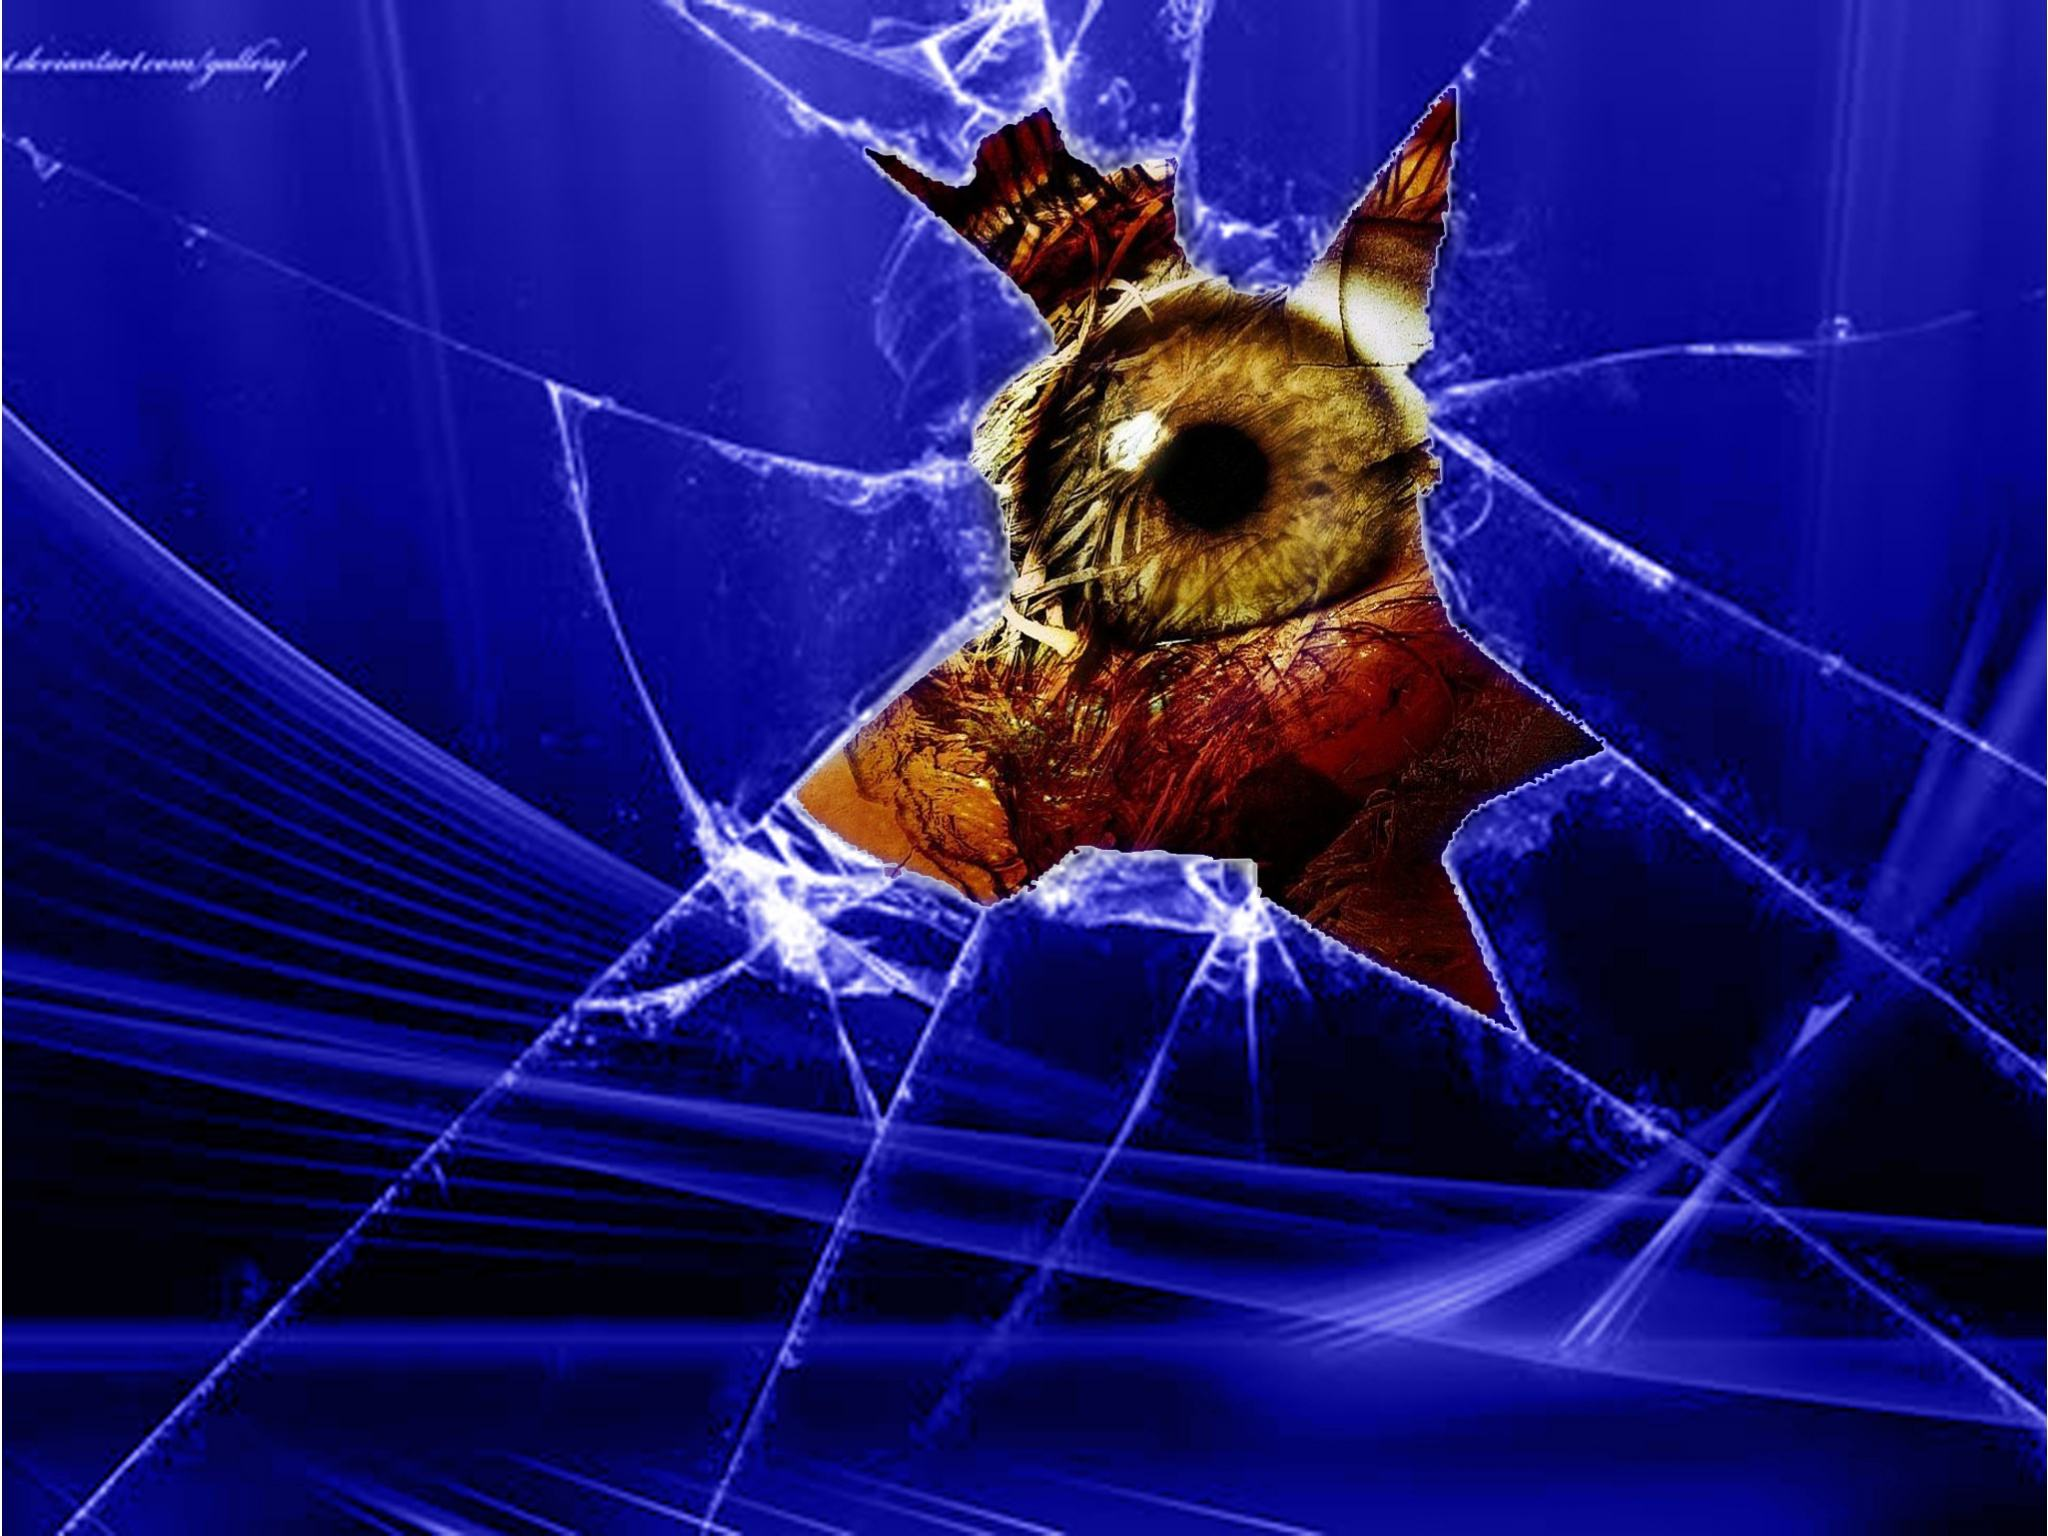 Wallpapers Backgrounds   scary eye iPad Wallpaper 2048x1536 resolution 2048x1536